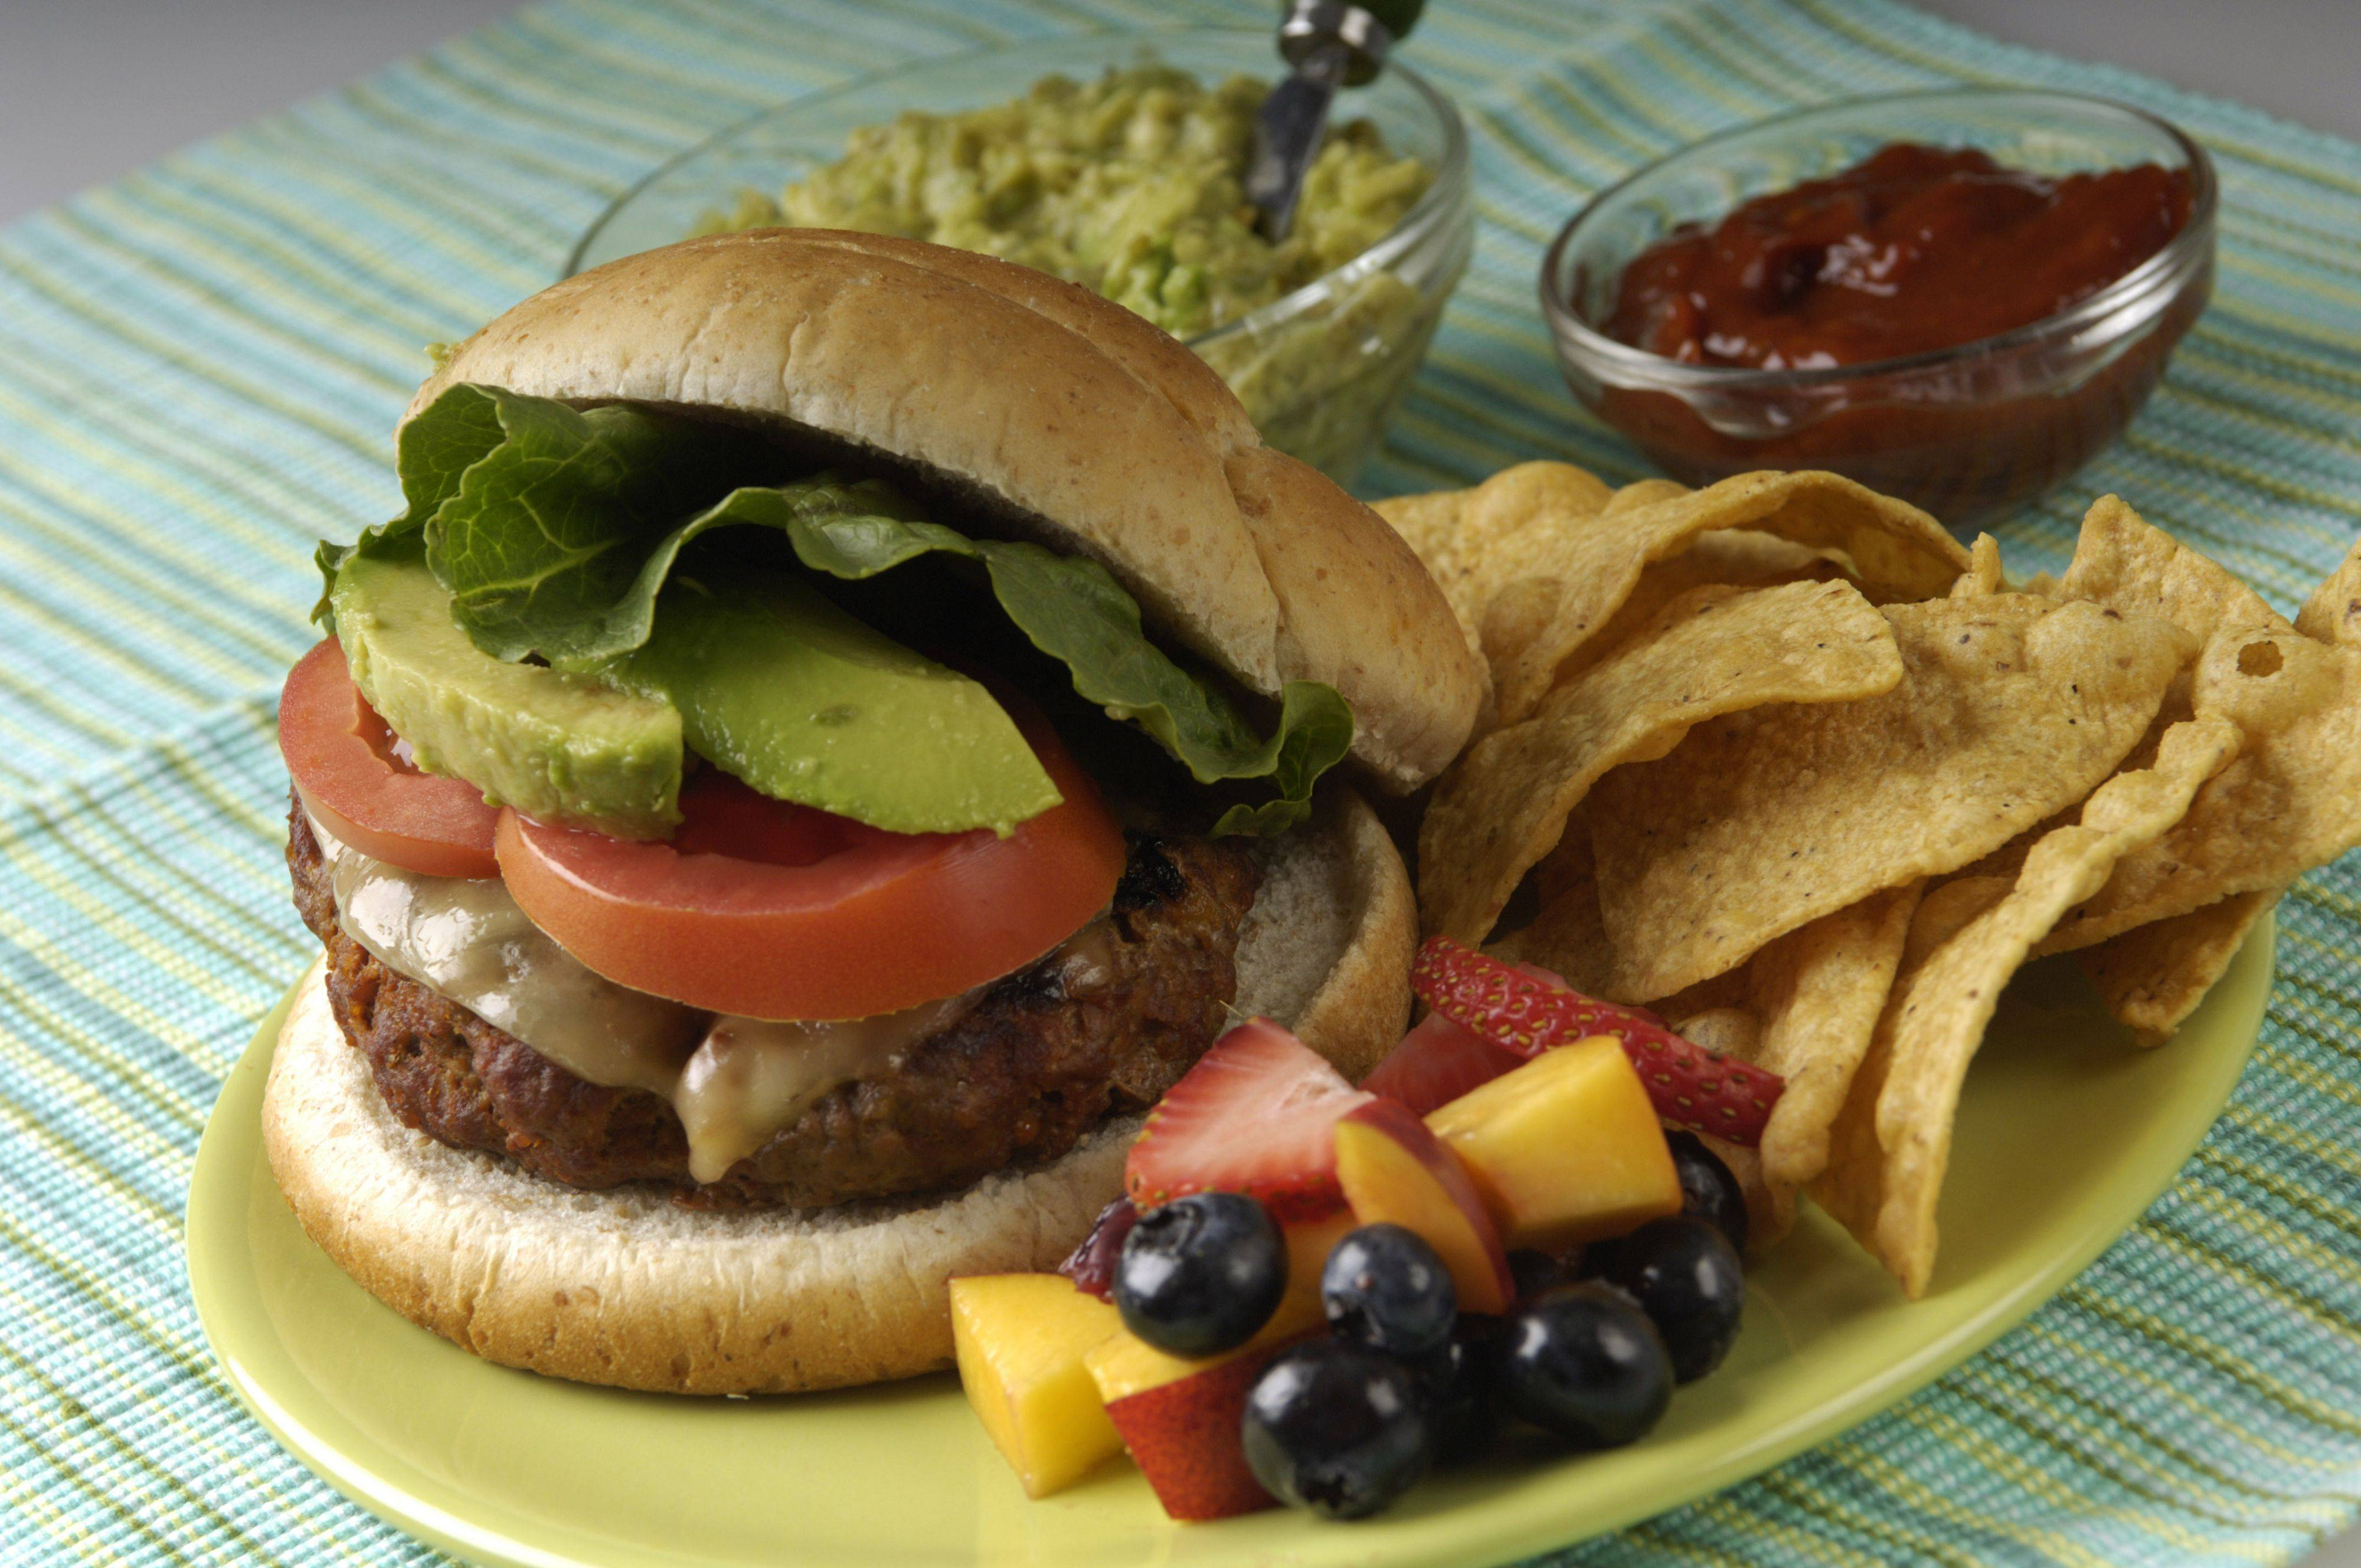 JOE LEWNARDTop your Nacho Burger with guacamole or spicy chipotle ketchup.